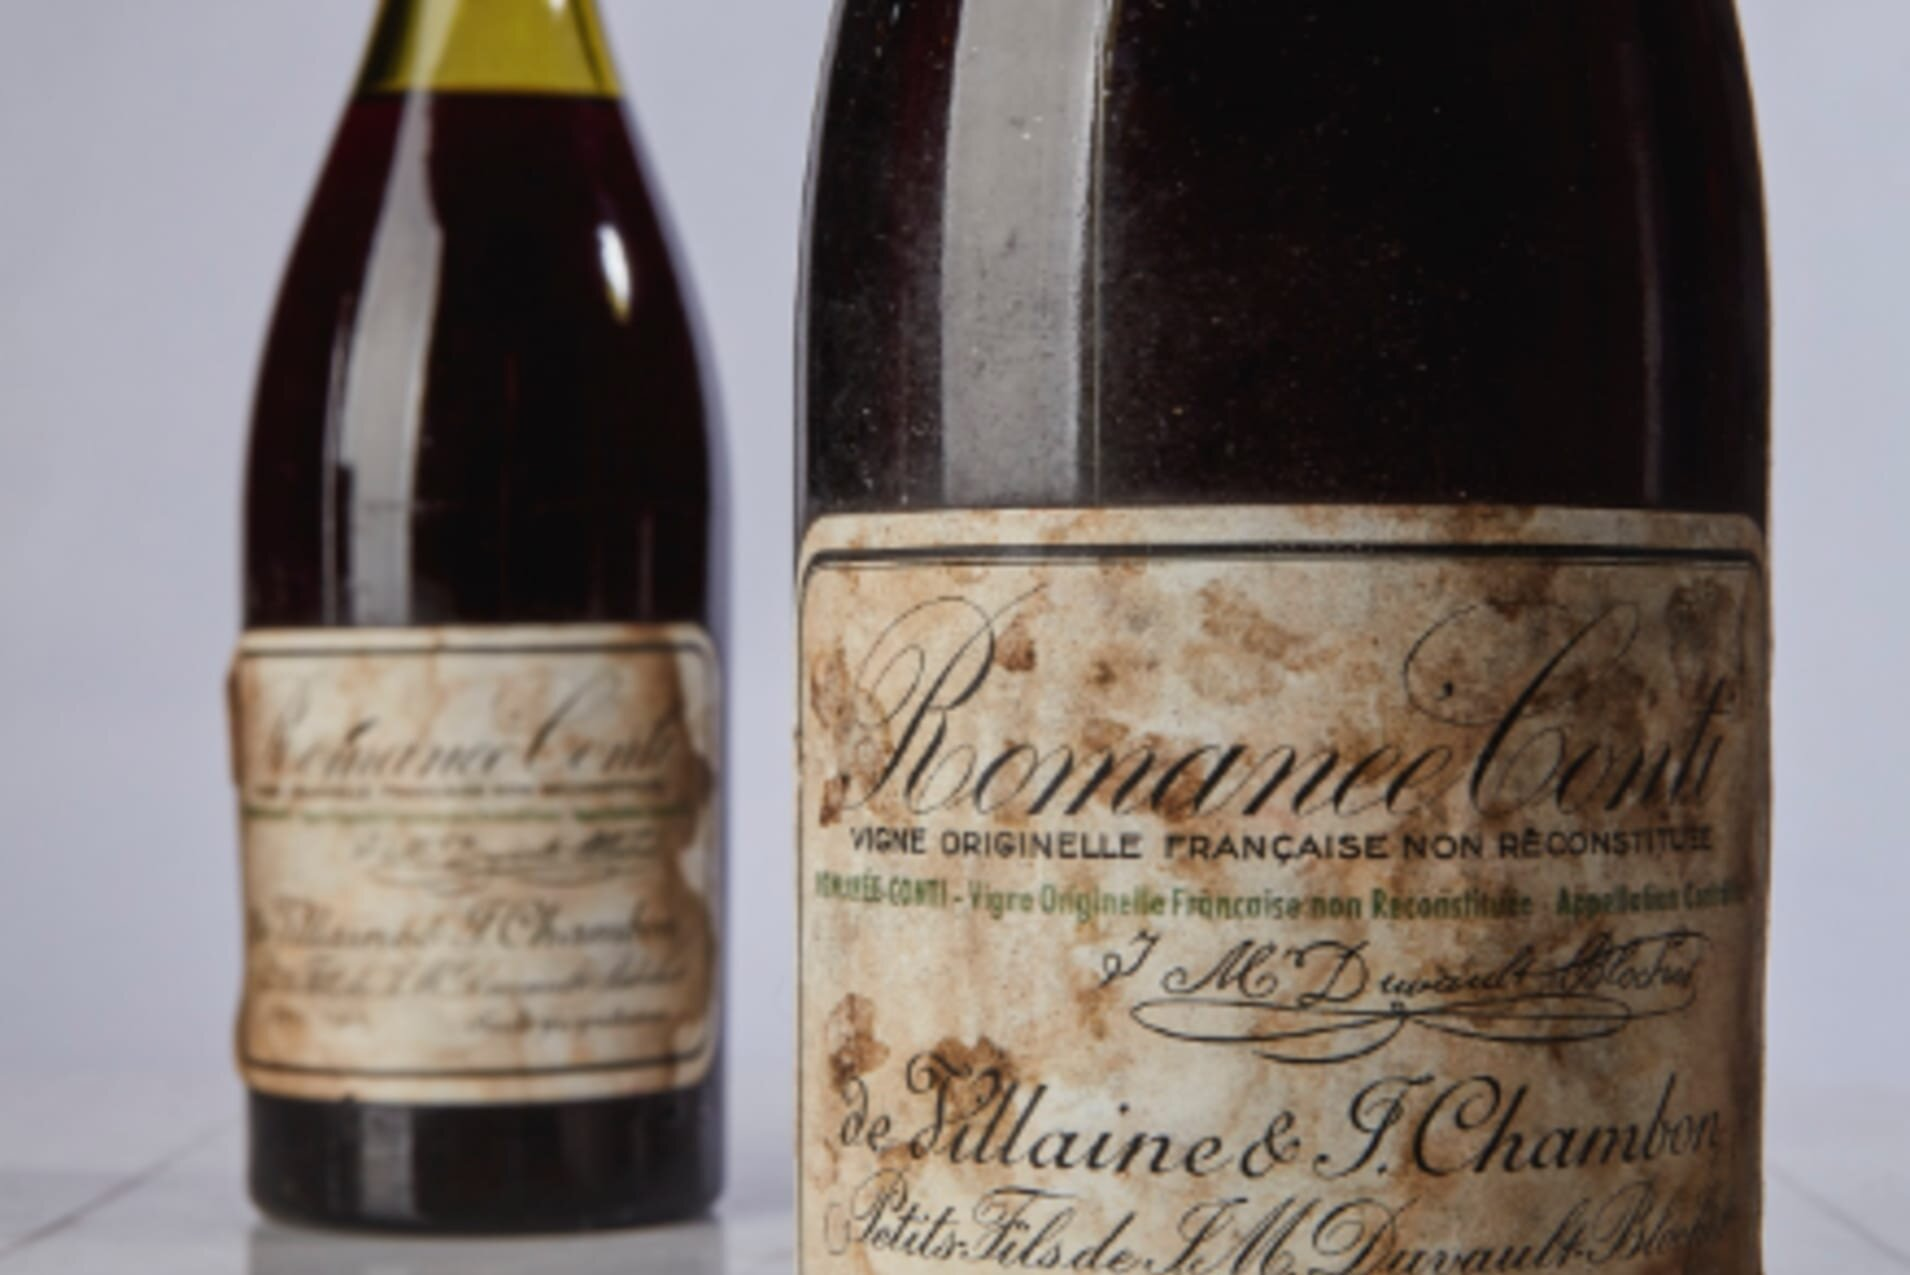 Trivia: Ten fun facts about wine you (possibly) didn't know